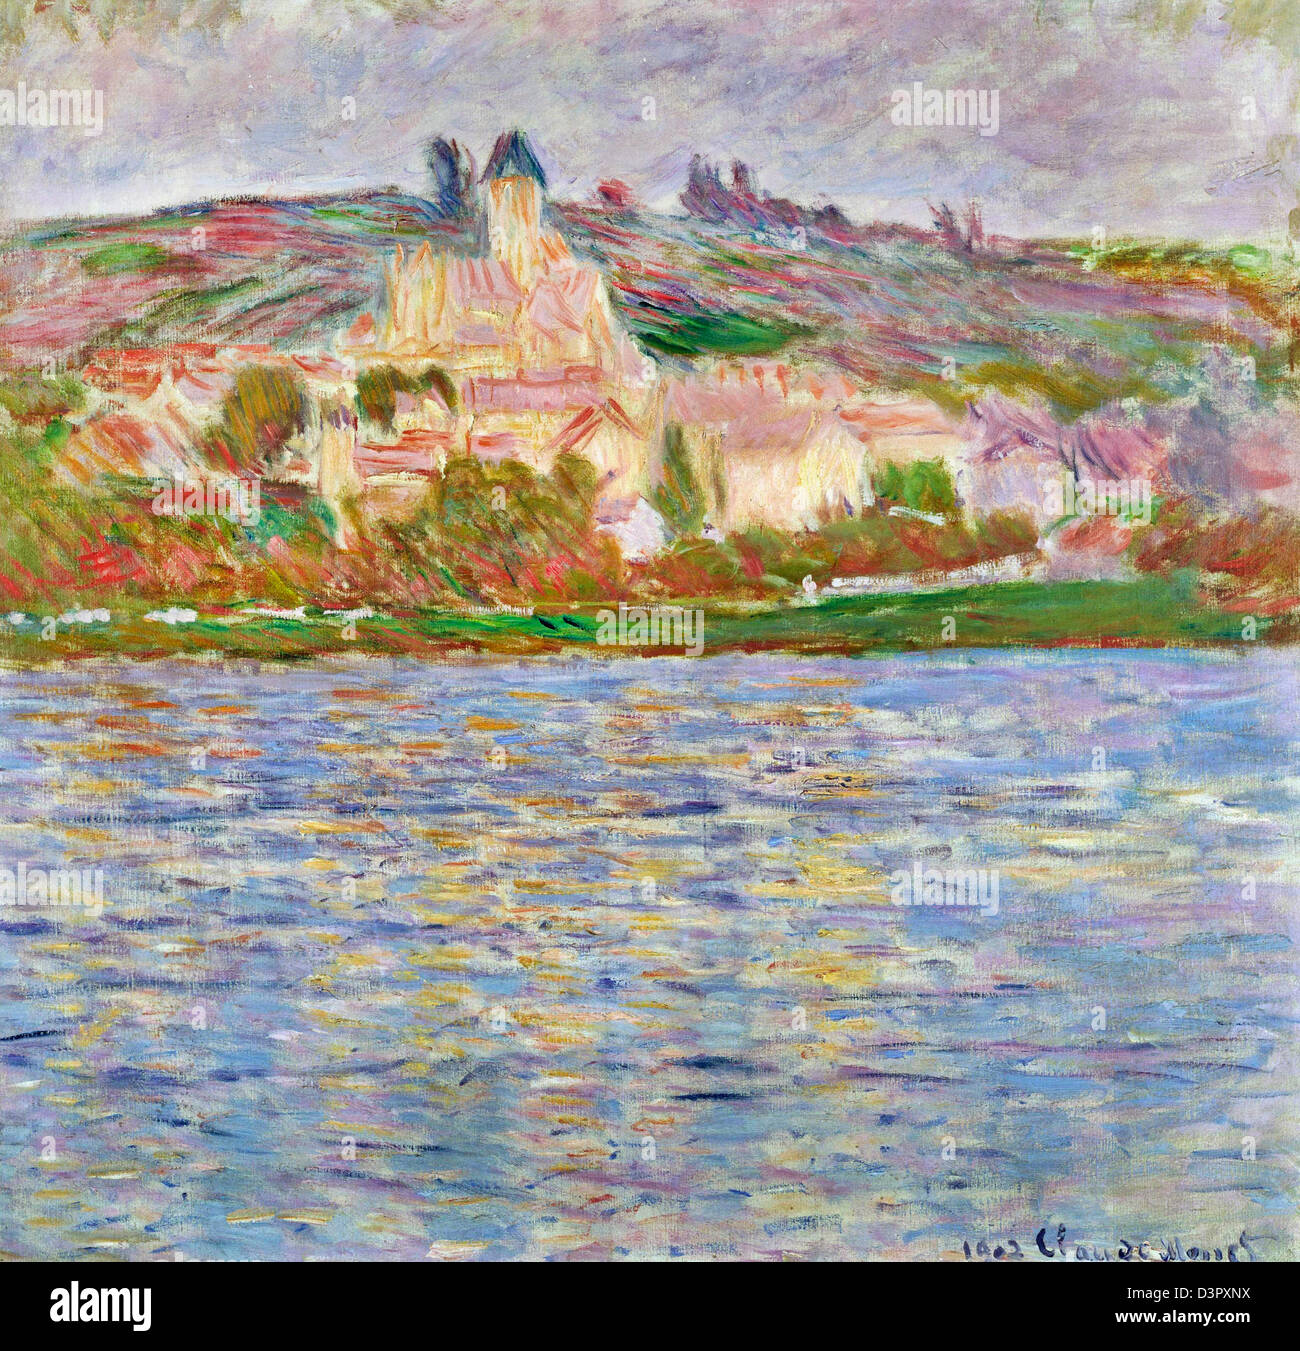 Claude Monet, Vetheuil 1902 Oil on canvas. National Museum of Western Art, Tokyo - Stock Image